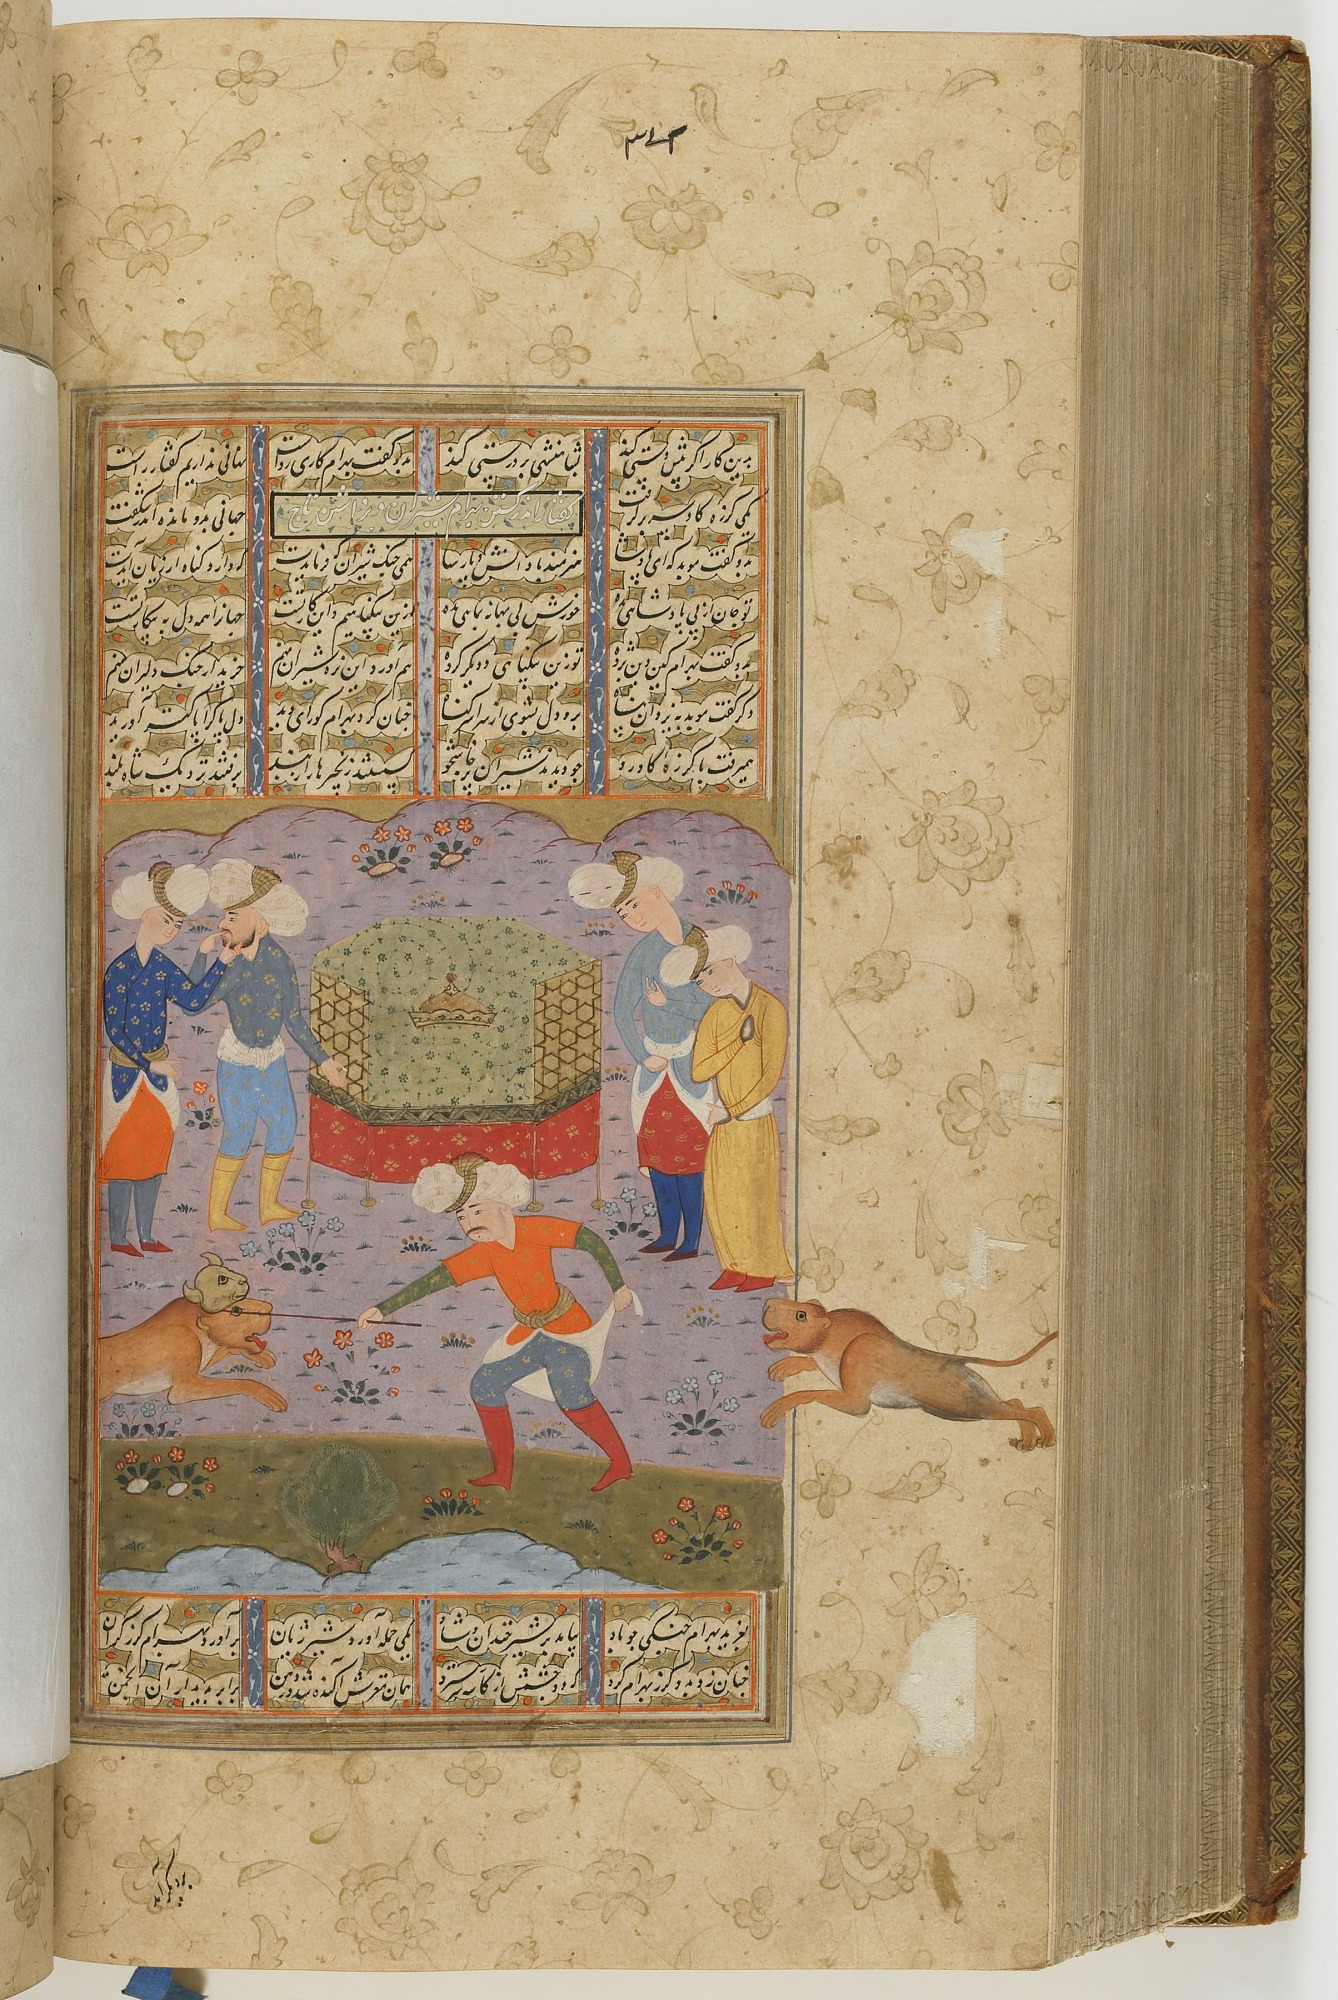 folio 373 verso: The Shahnama (Book of kings) by Firdausi (d. 1020)